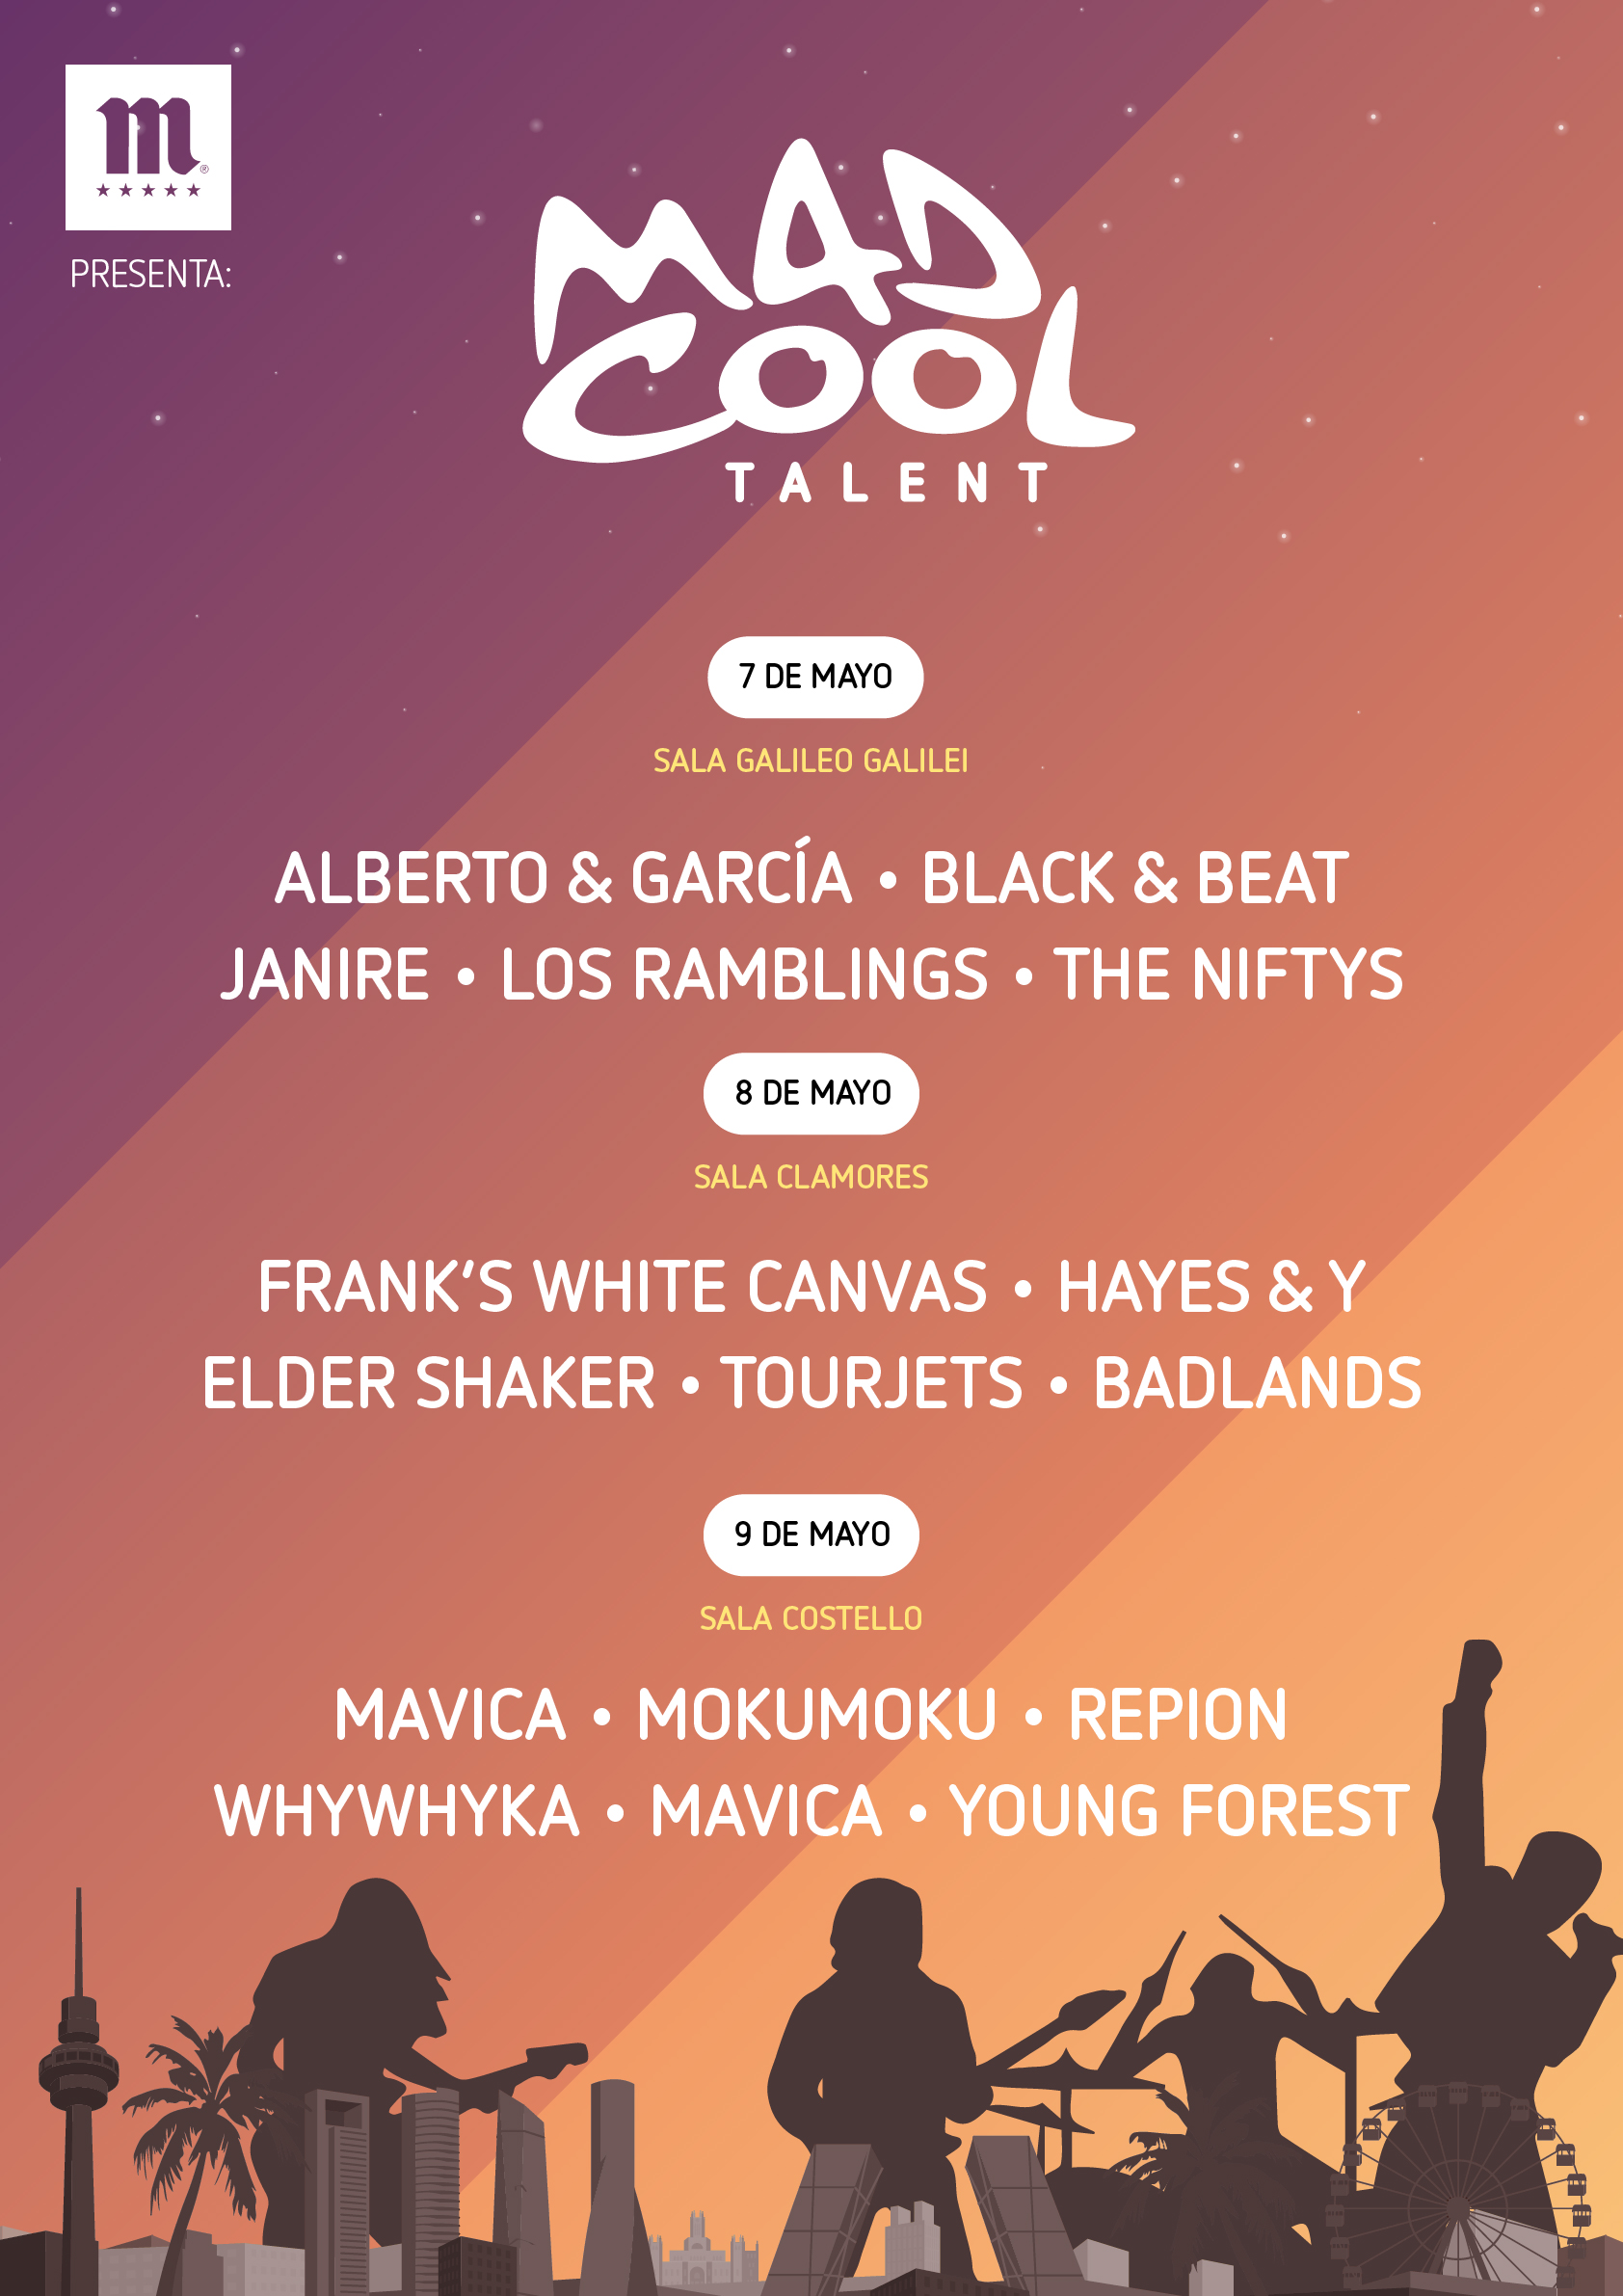 Mad Cool Talent anuncia sus tres conciertos